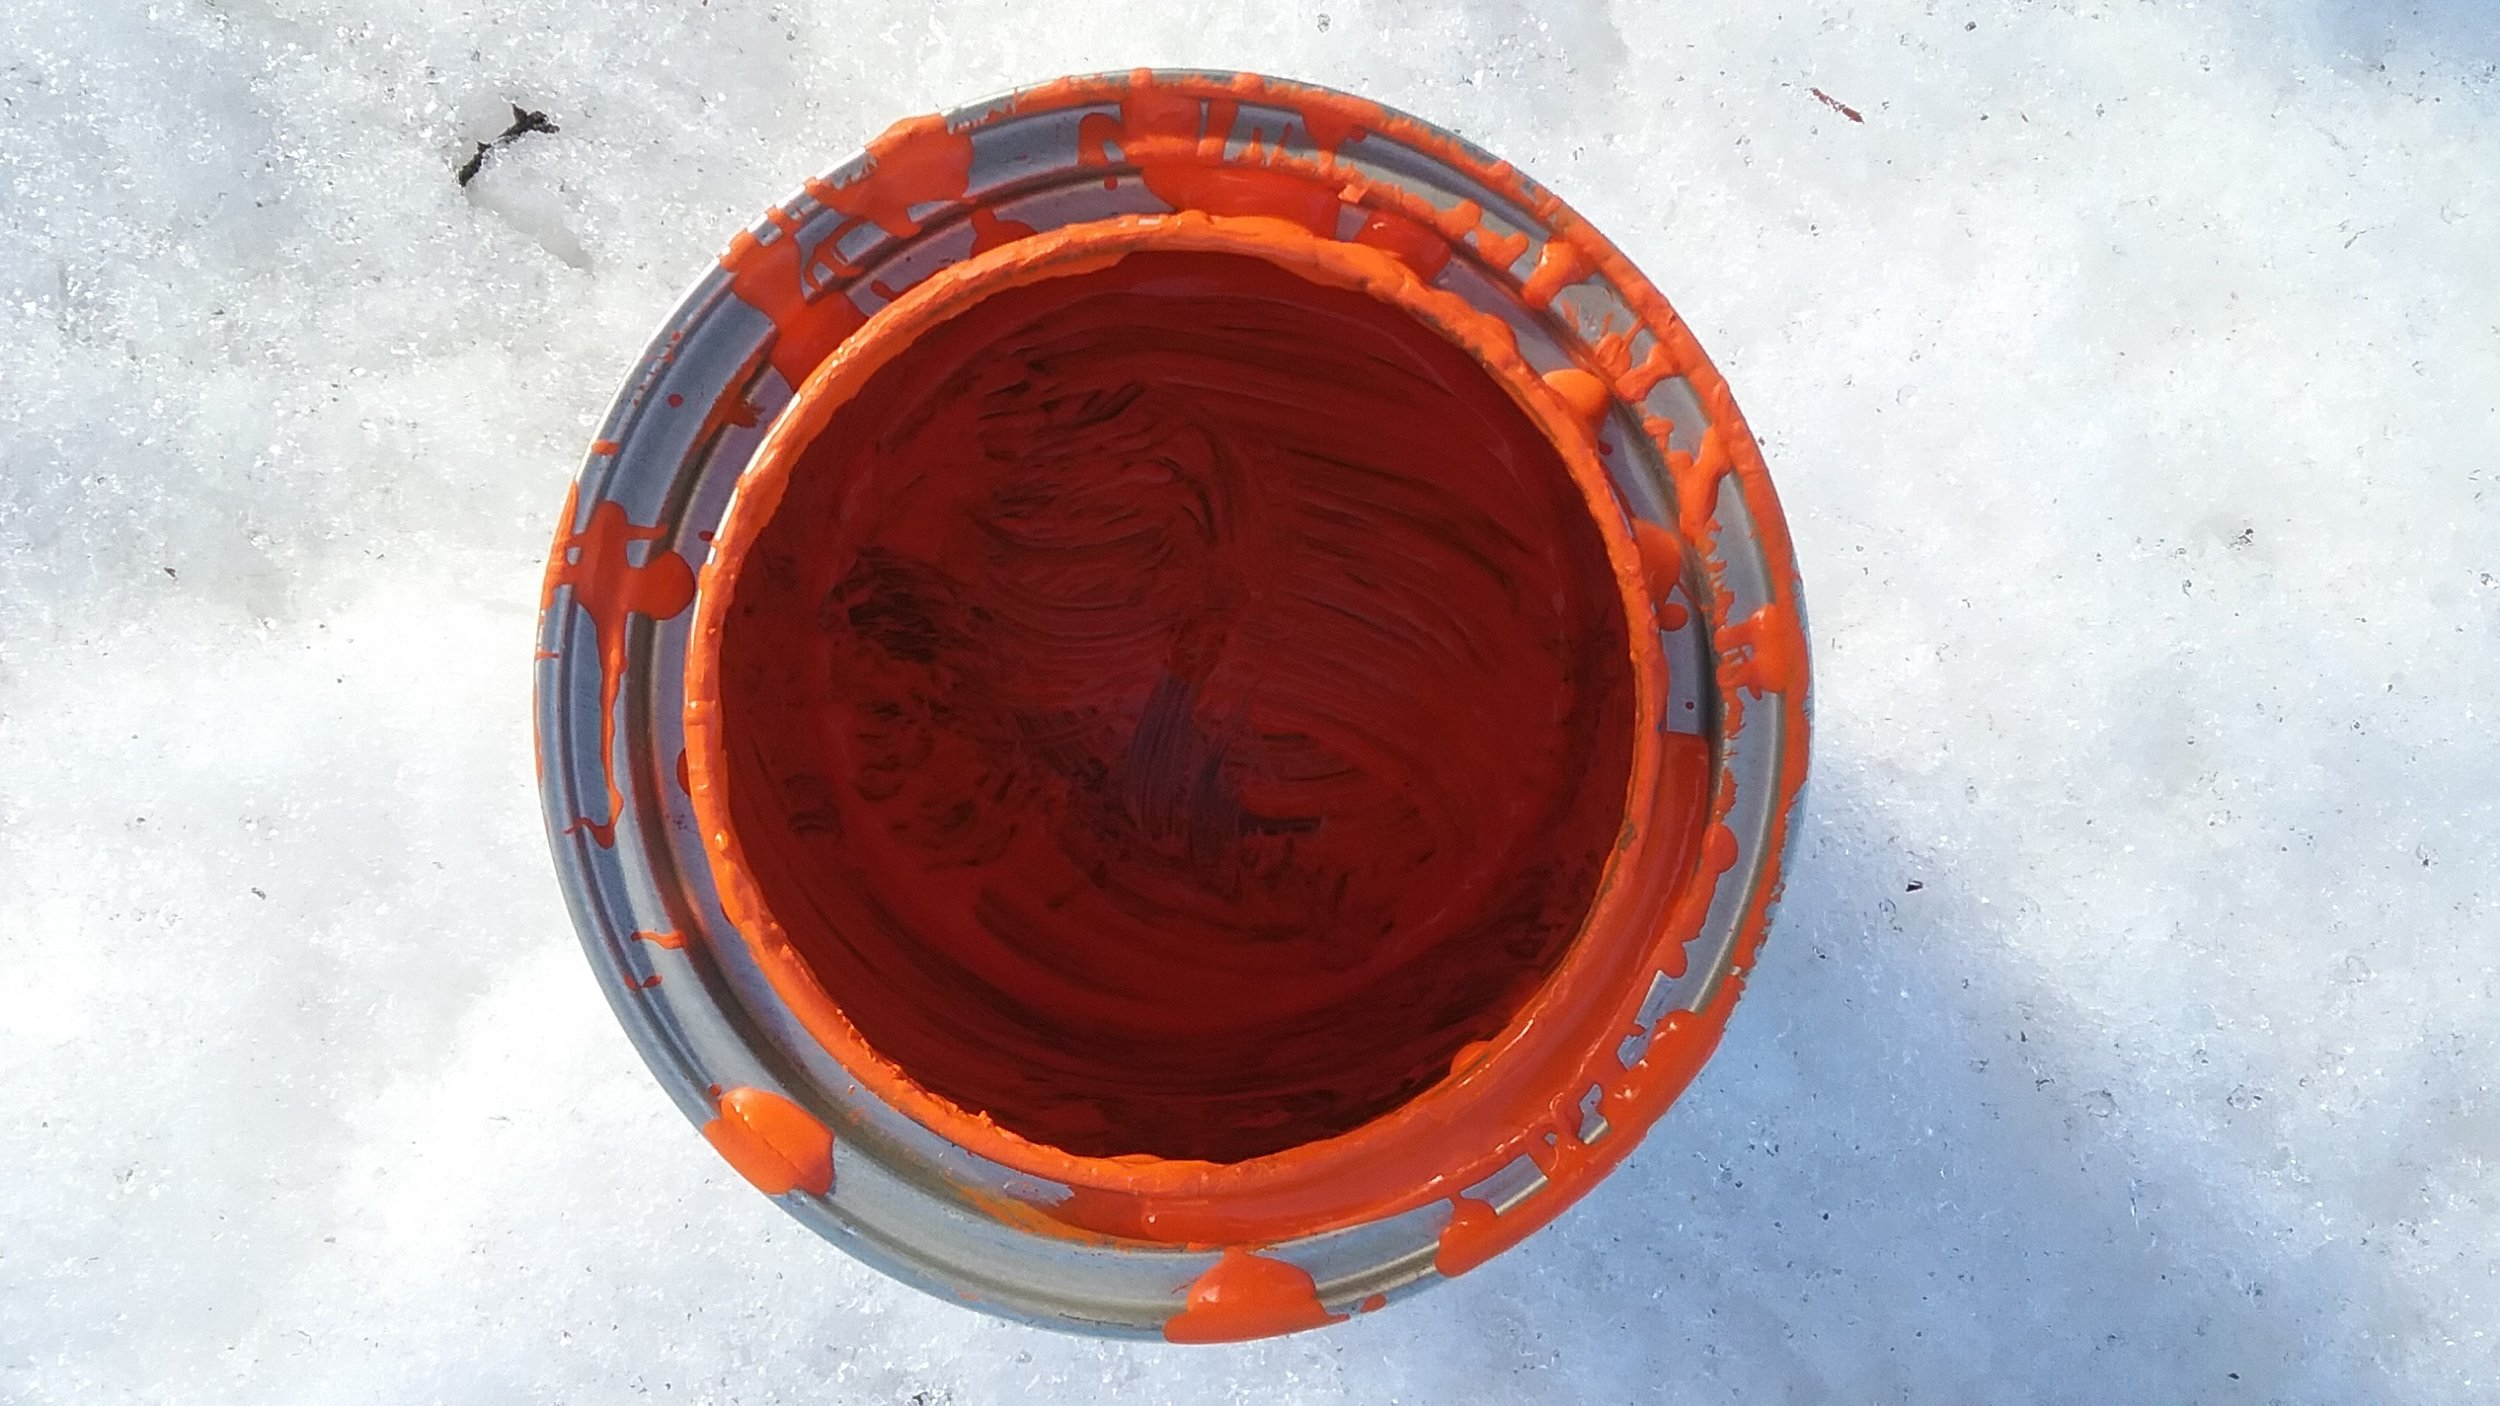 An empty pail of Pantone 021-ish paint for the pallets. In the snow, because it was still winter when we started this project.